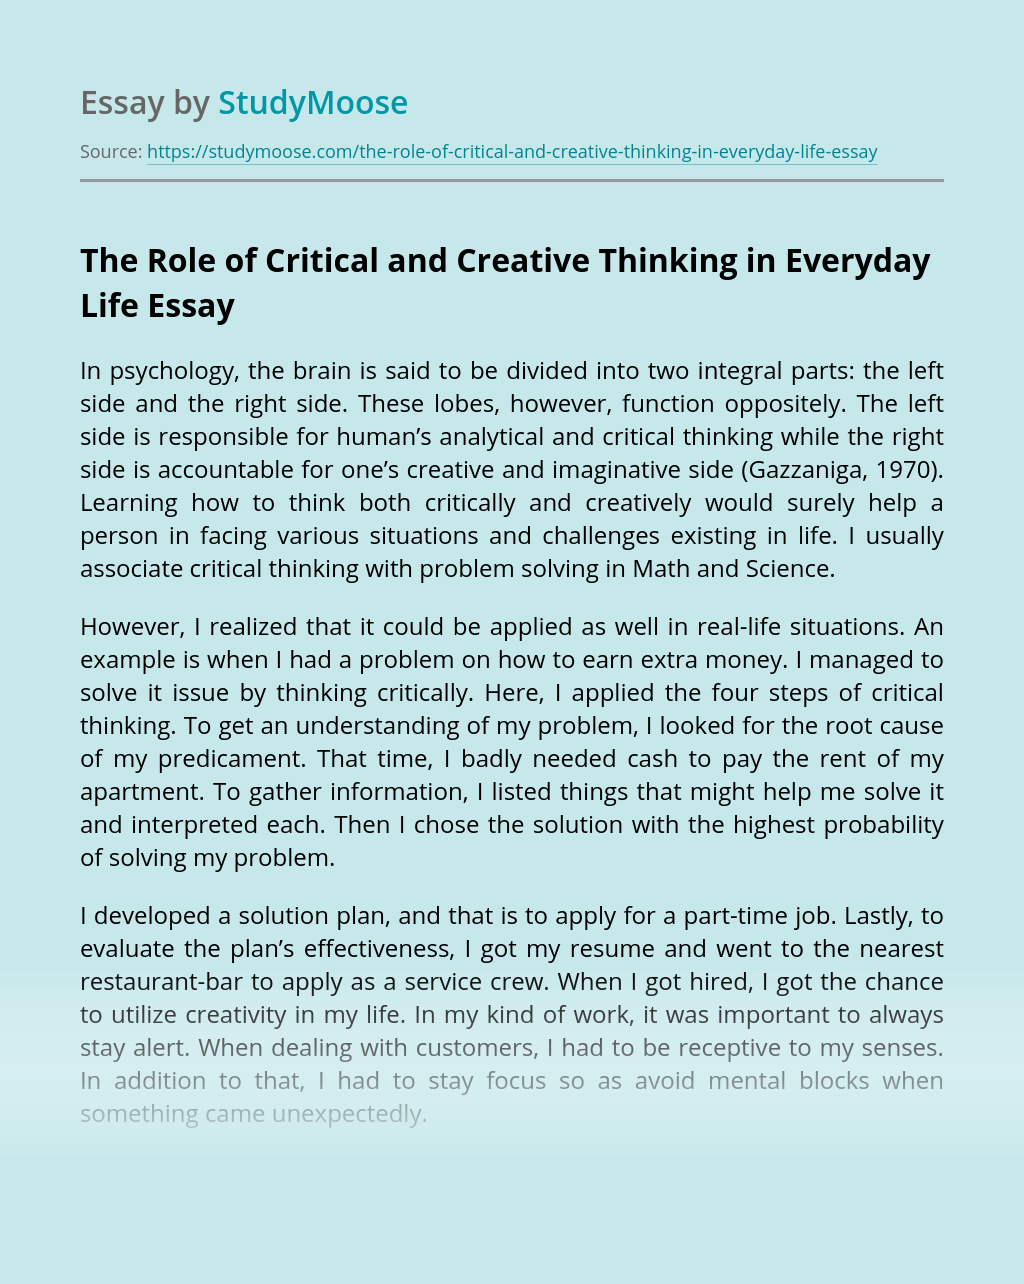 The Role of Critical and Creative Thinking in Everyday Life